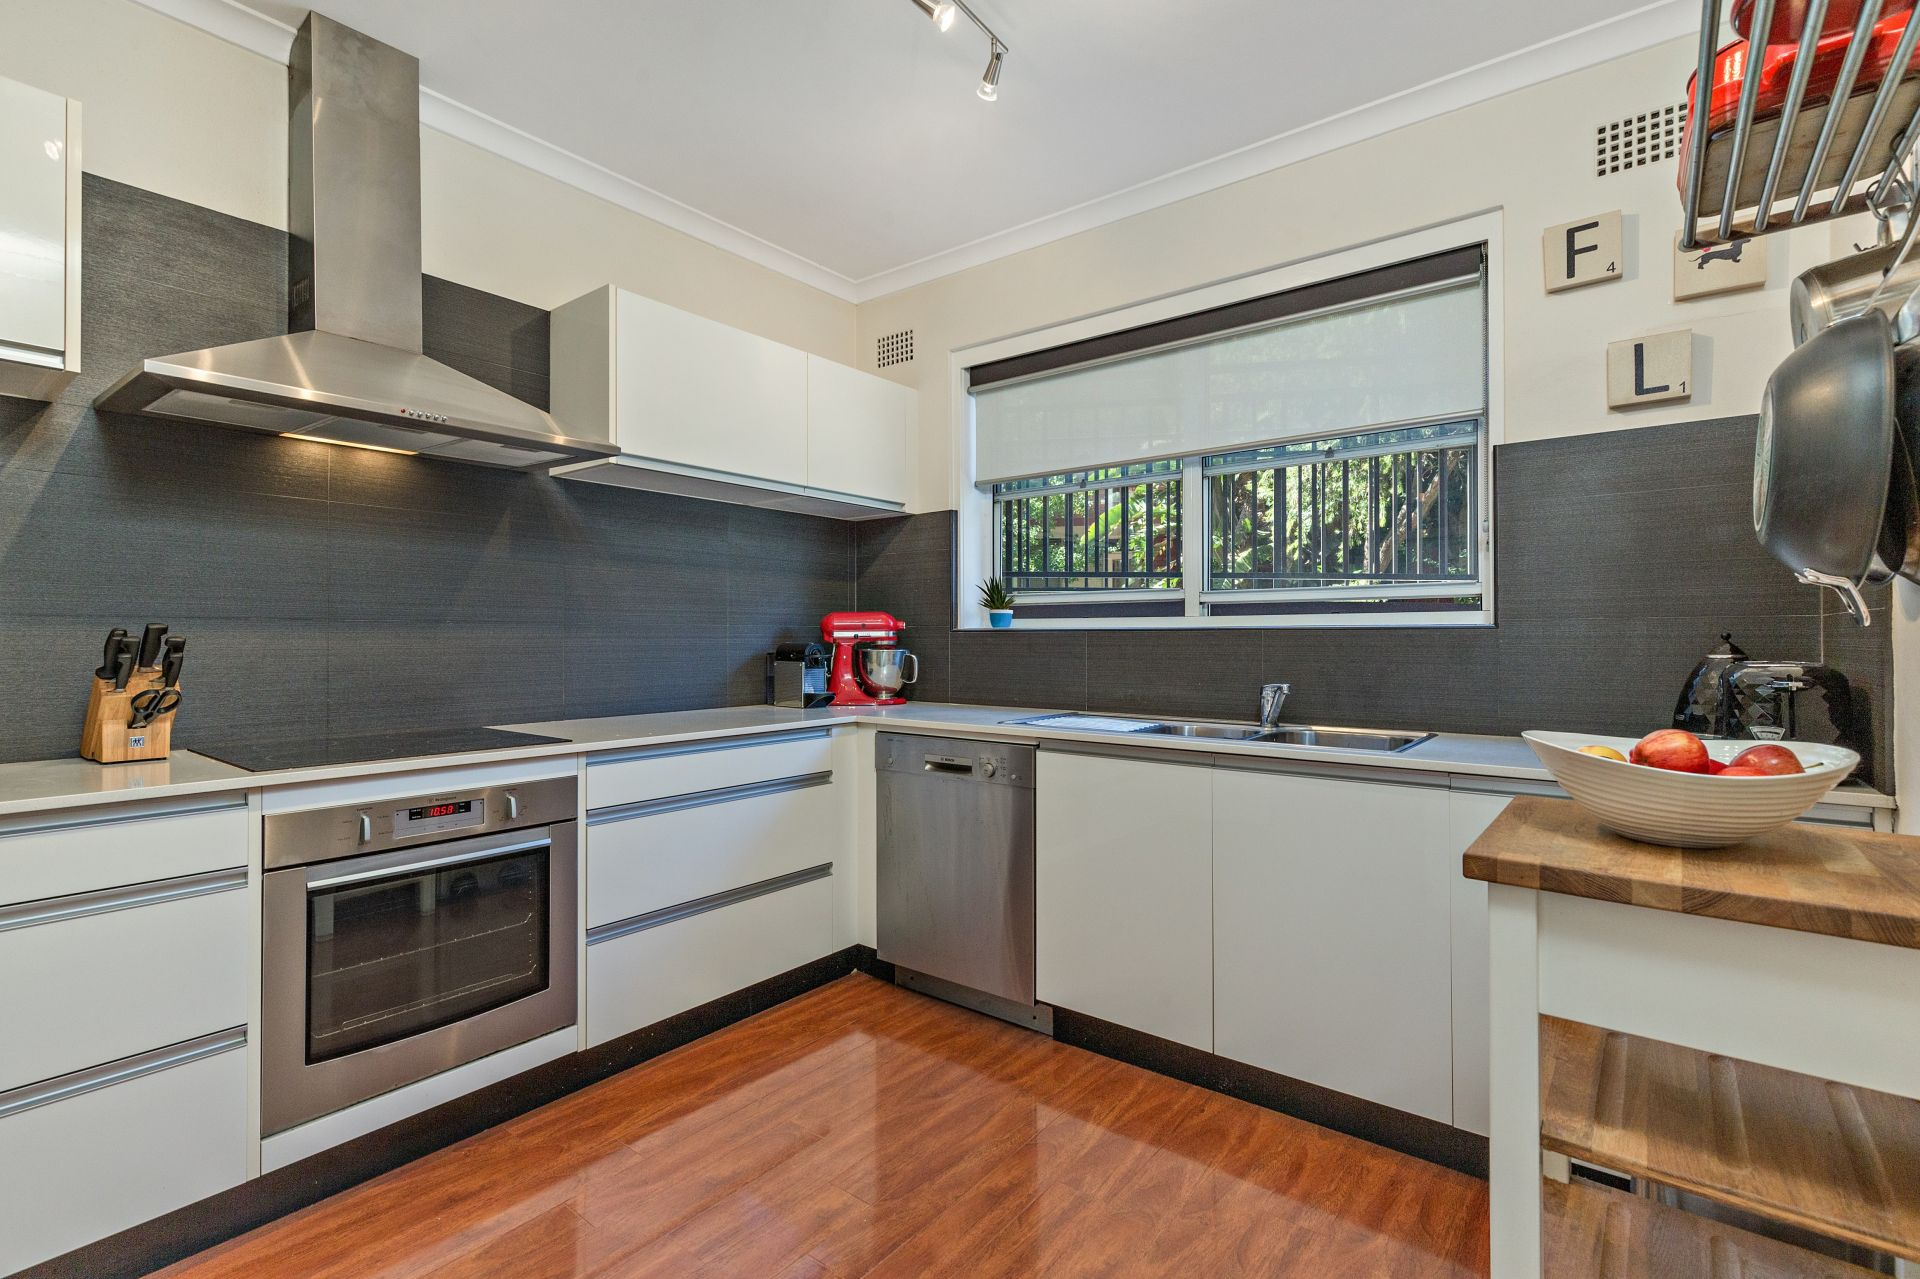 Kitchens Drummoyne Sold Property Sold Price For 1 18 Collingwood Street Drummoyne